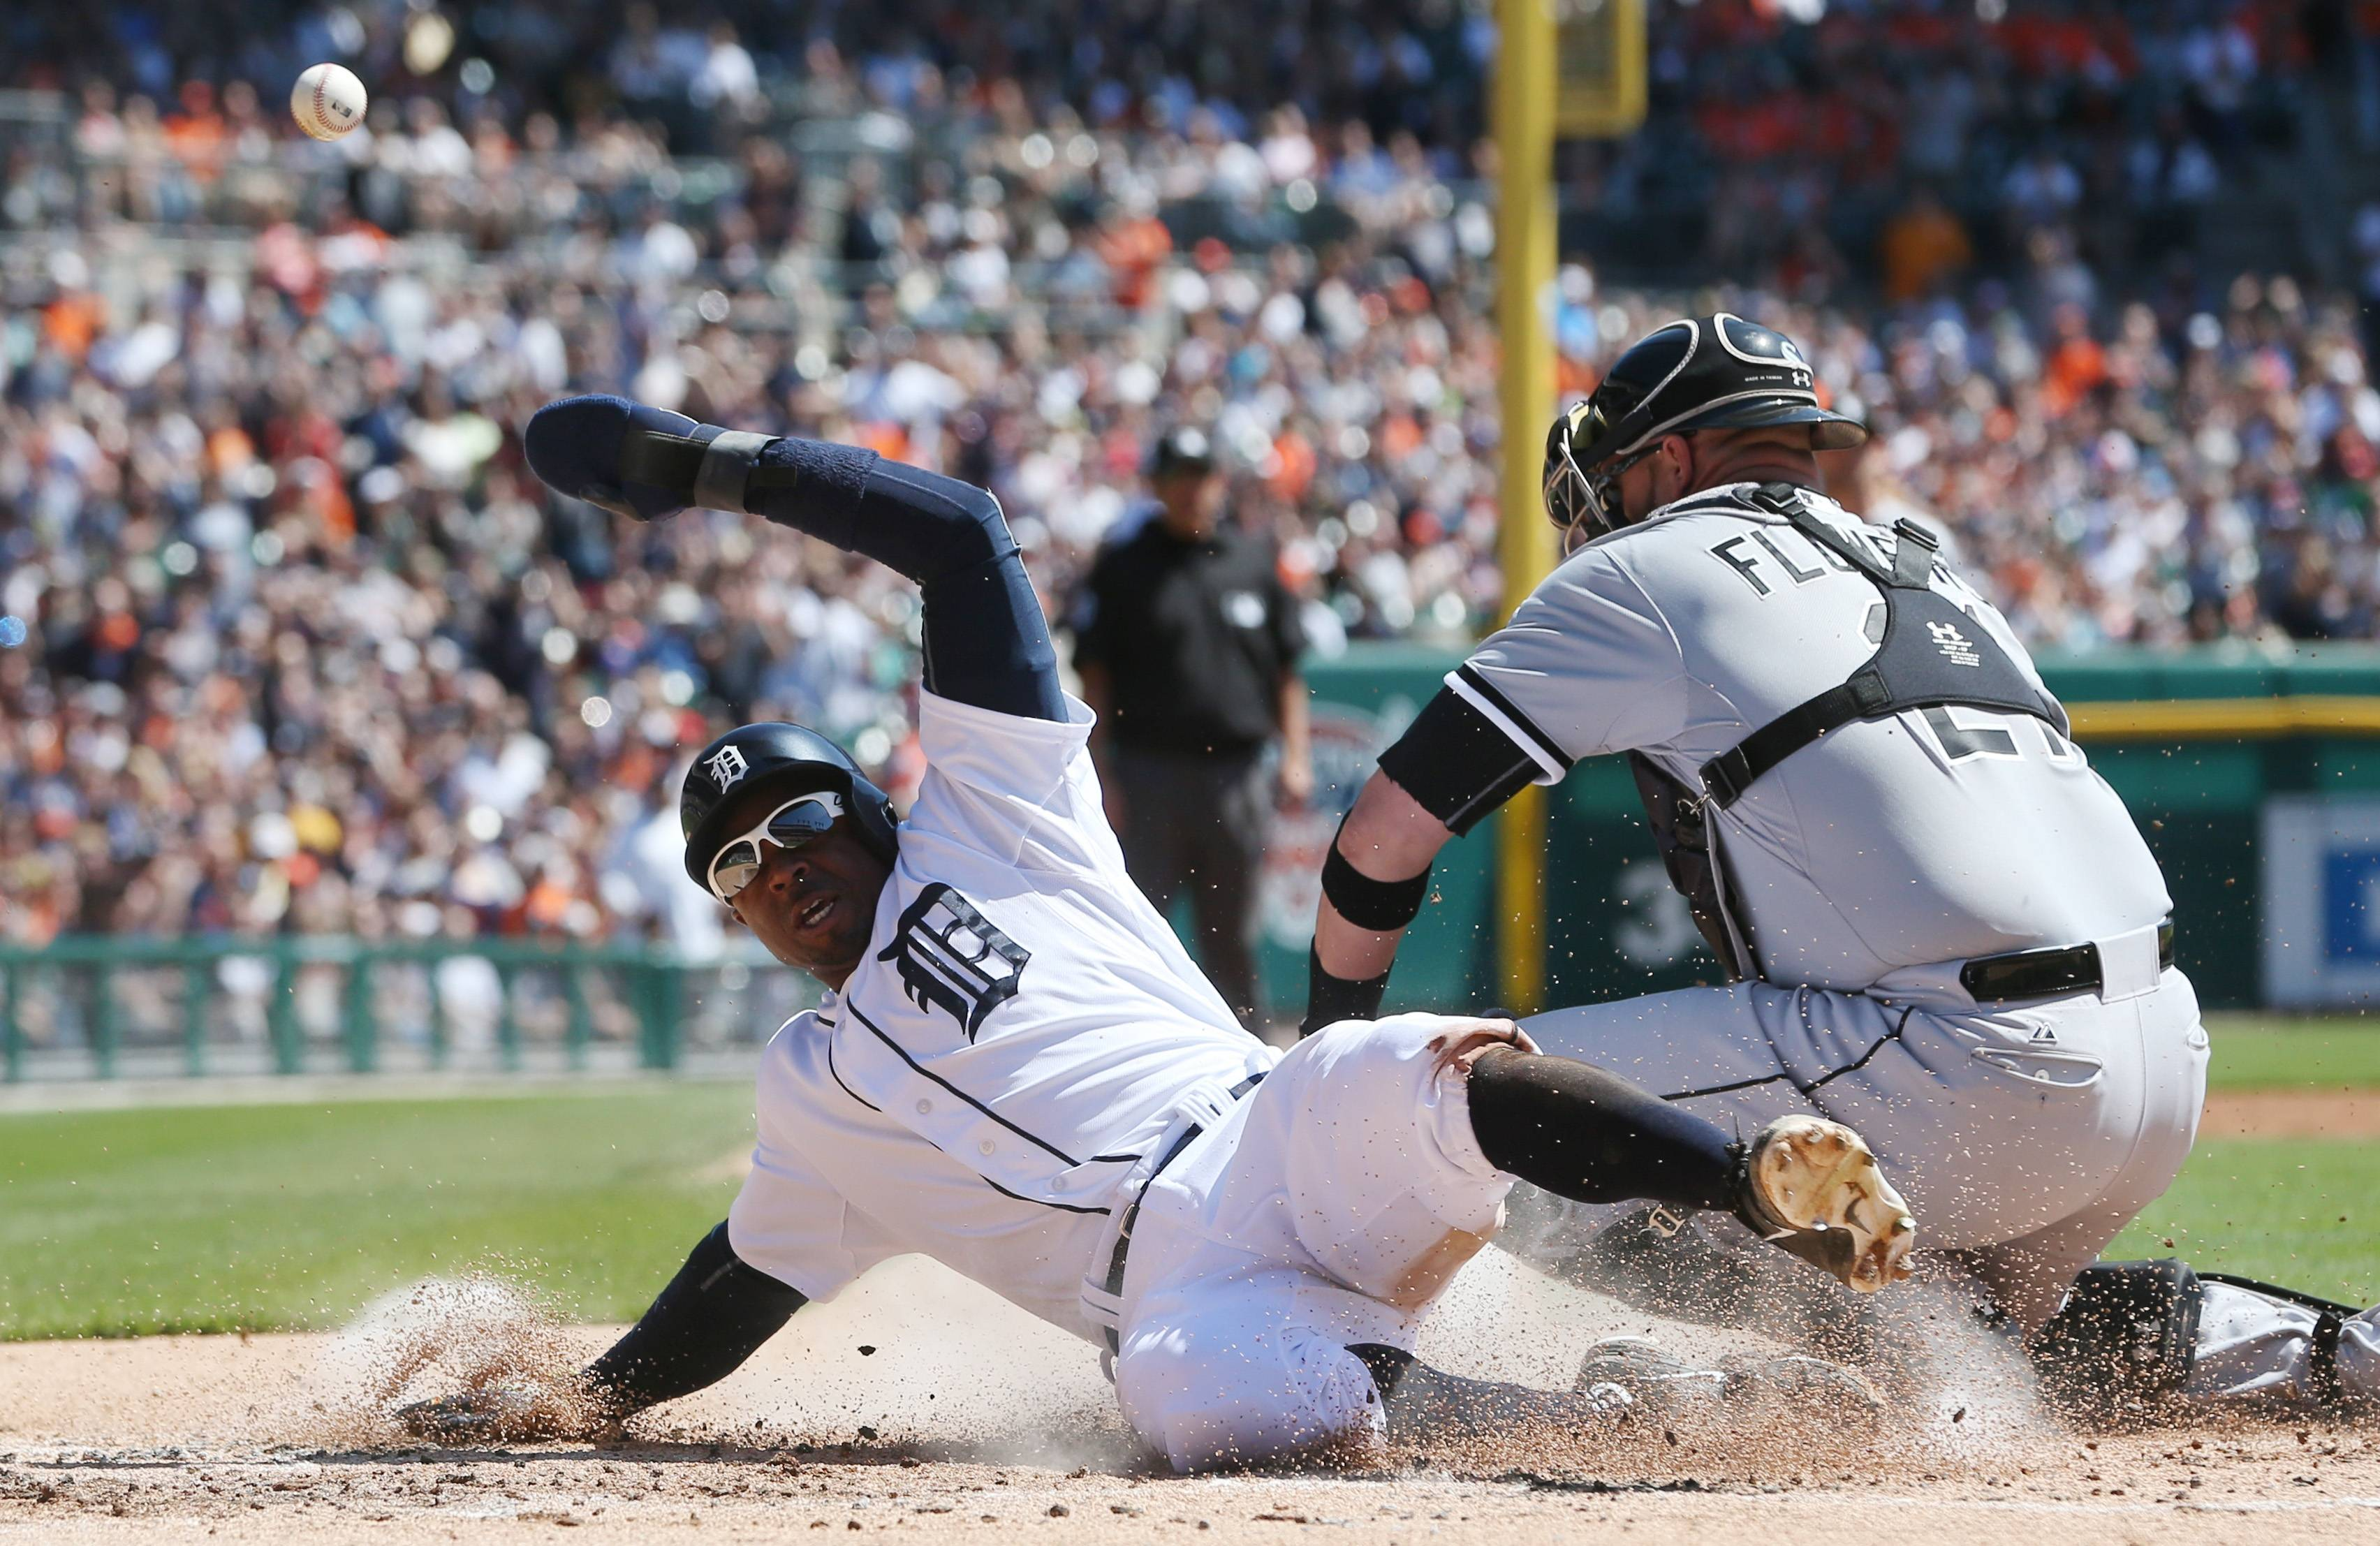 White Sox catcher Tyler Flowers misplays the throw from center fielder Adam Eaton to allow Detroit Tigers' Rajai Davis to score from third on Saturday,